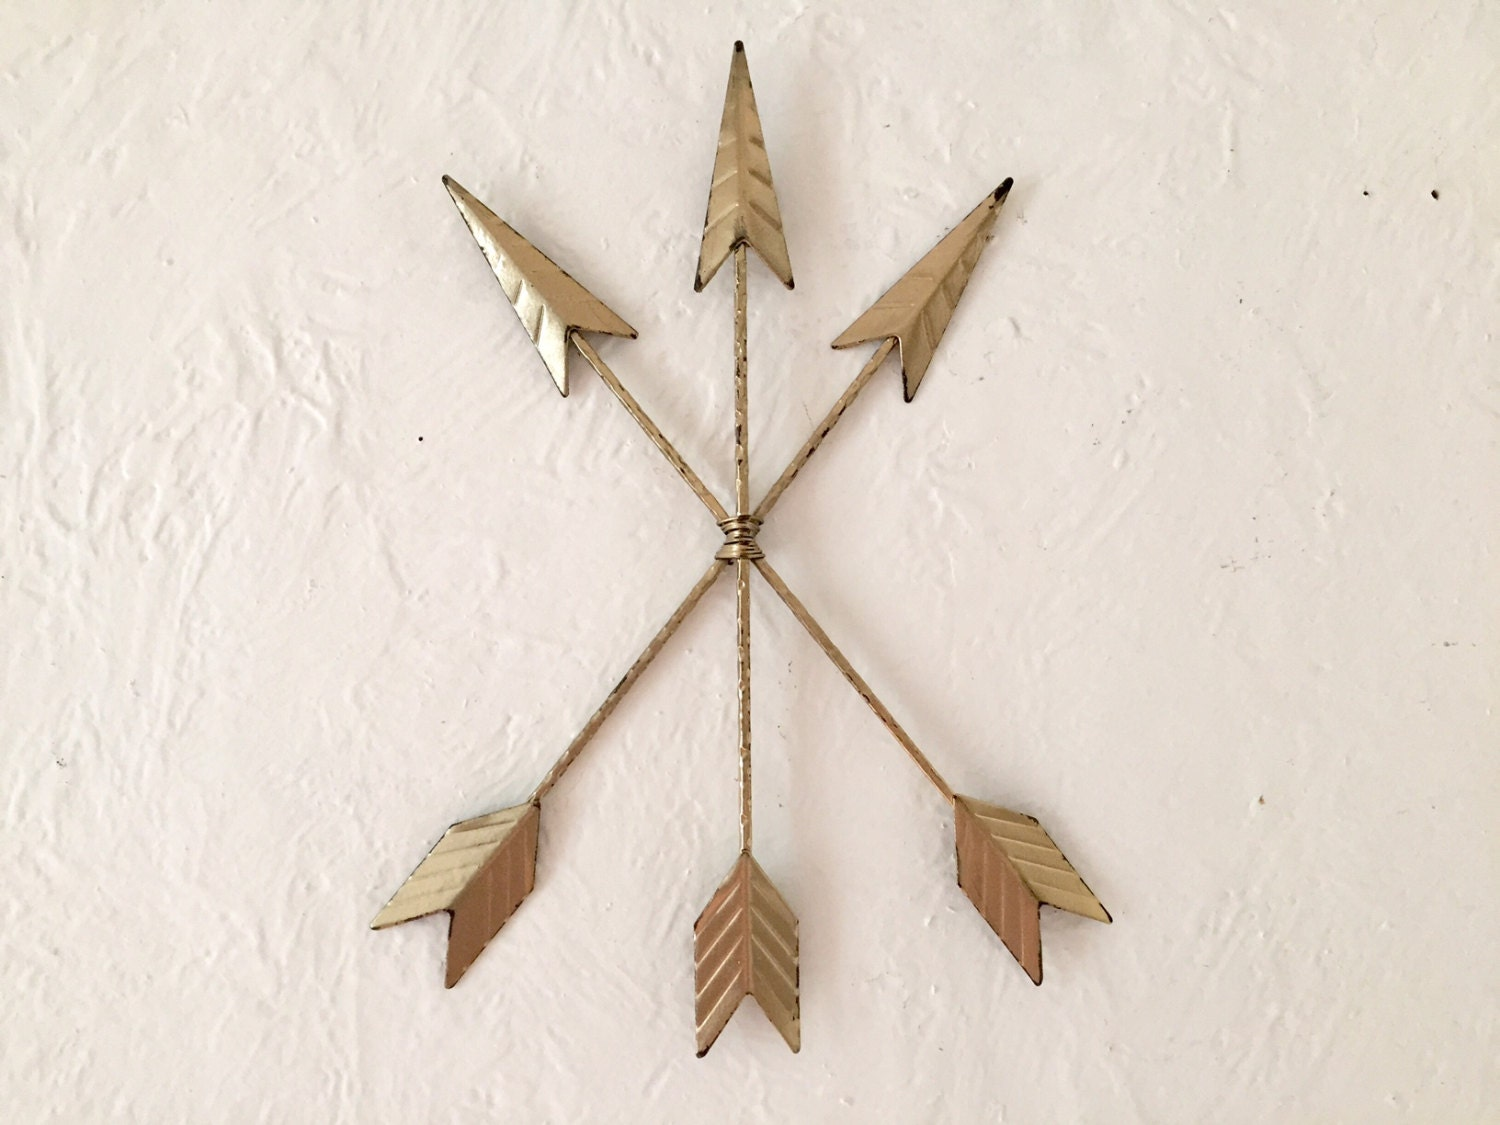 Distressed Metal Wall Decor : Arrows wall decor tribal metal distressed in gold